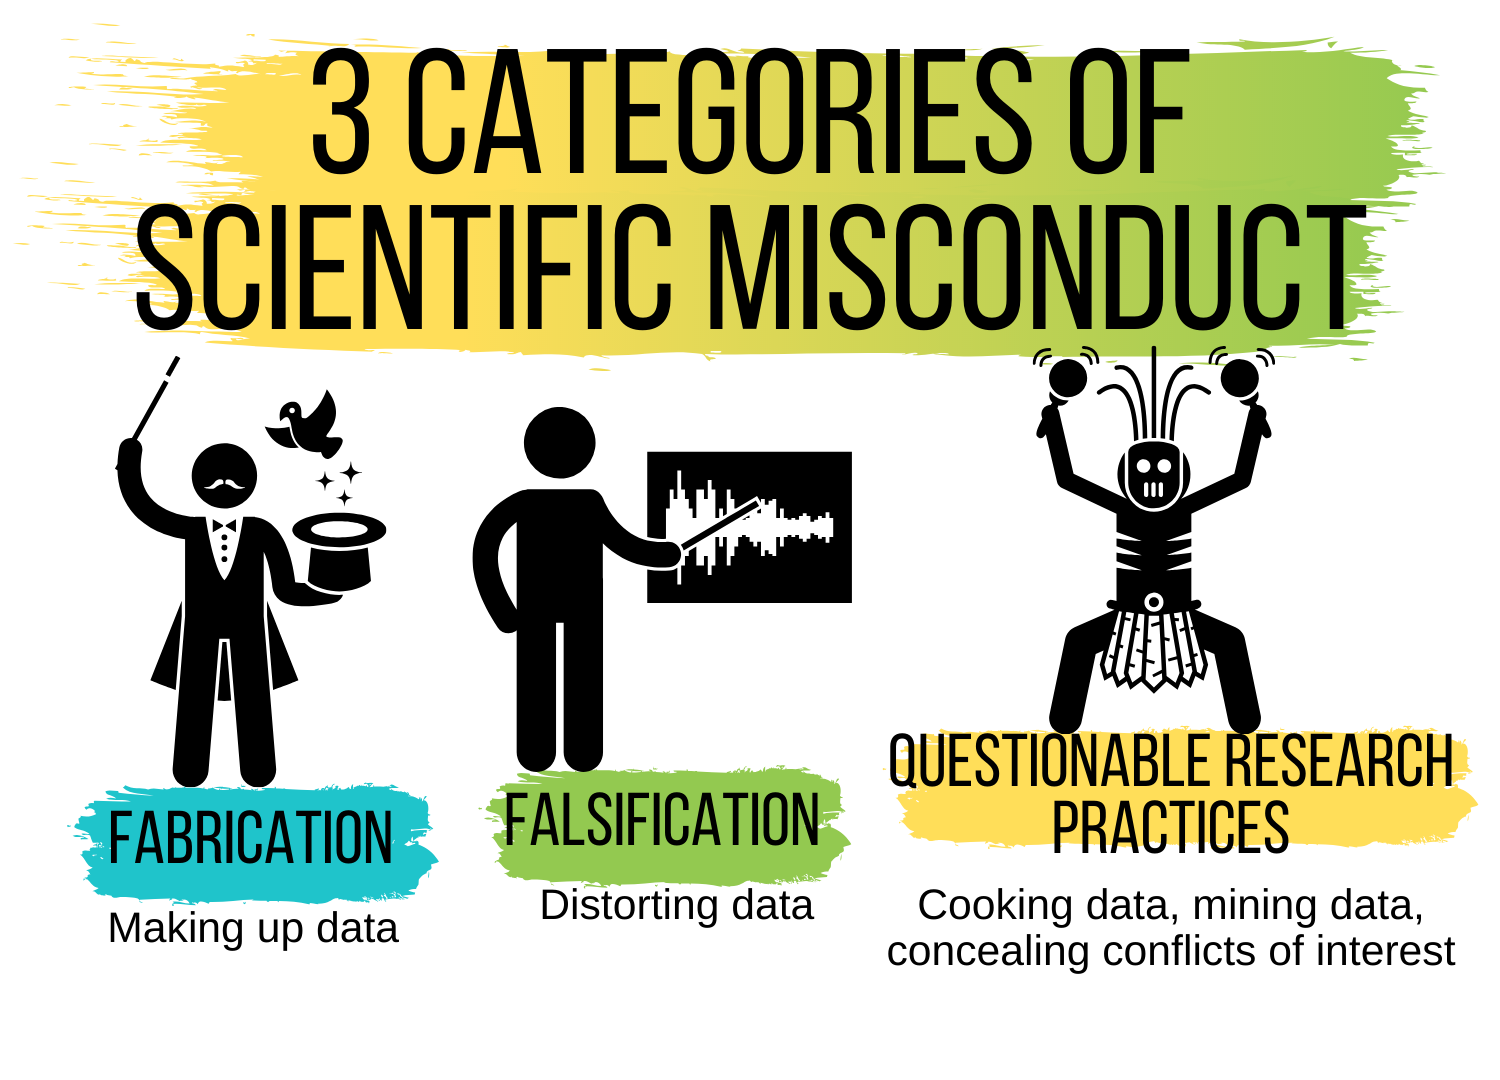 3 Categories of Scientific Misconduct fabrication, falsification, Questionable research methods